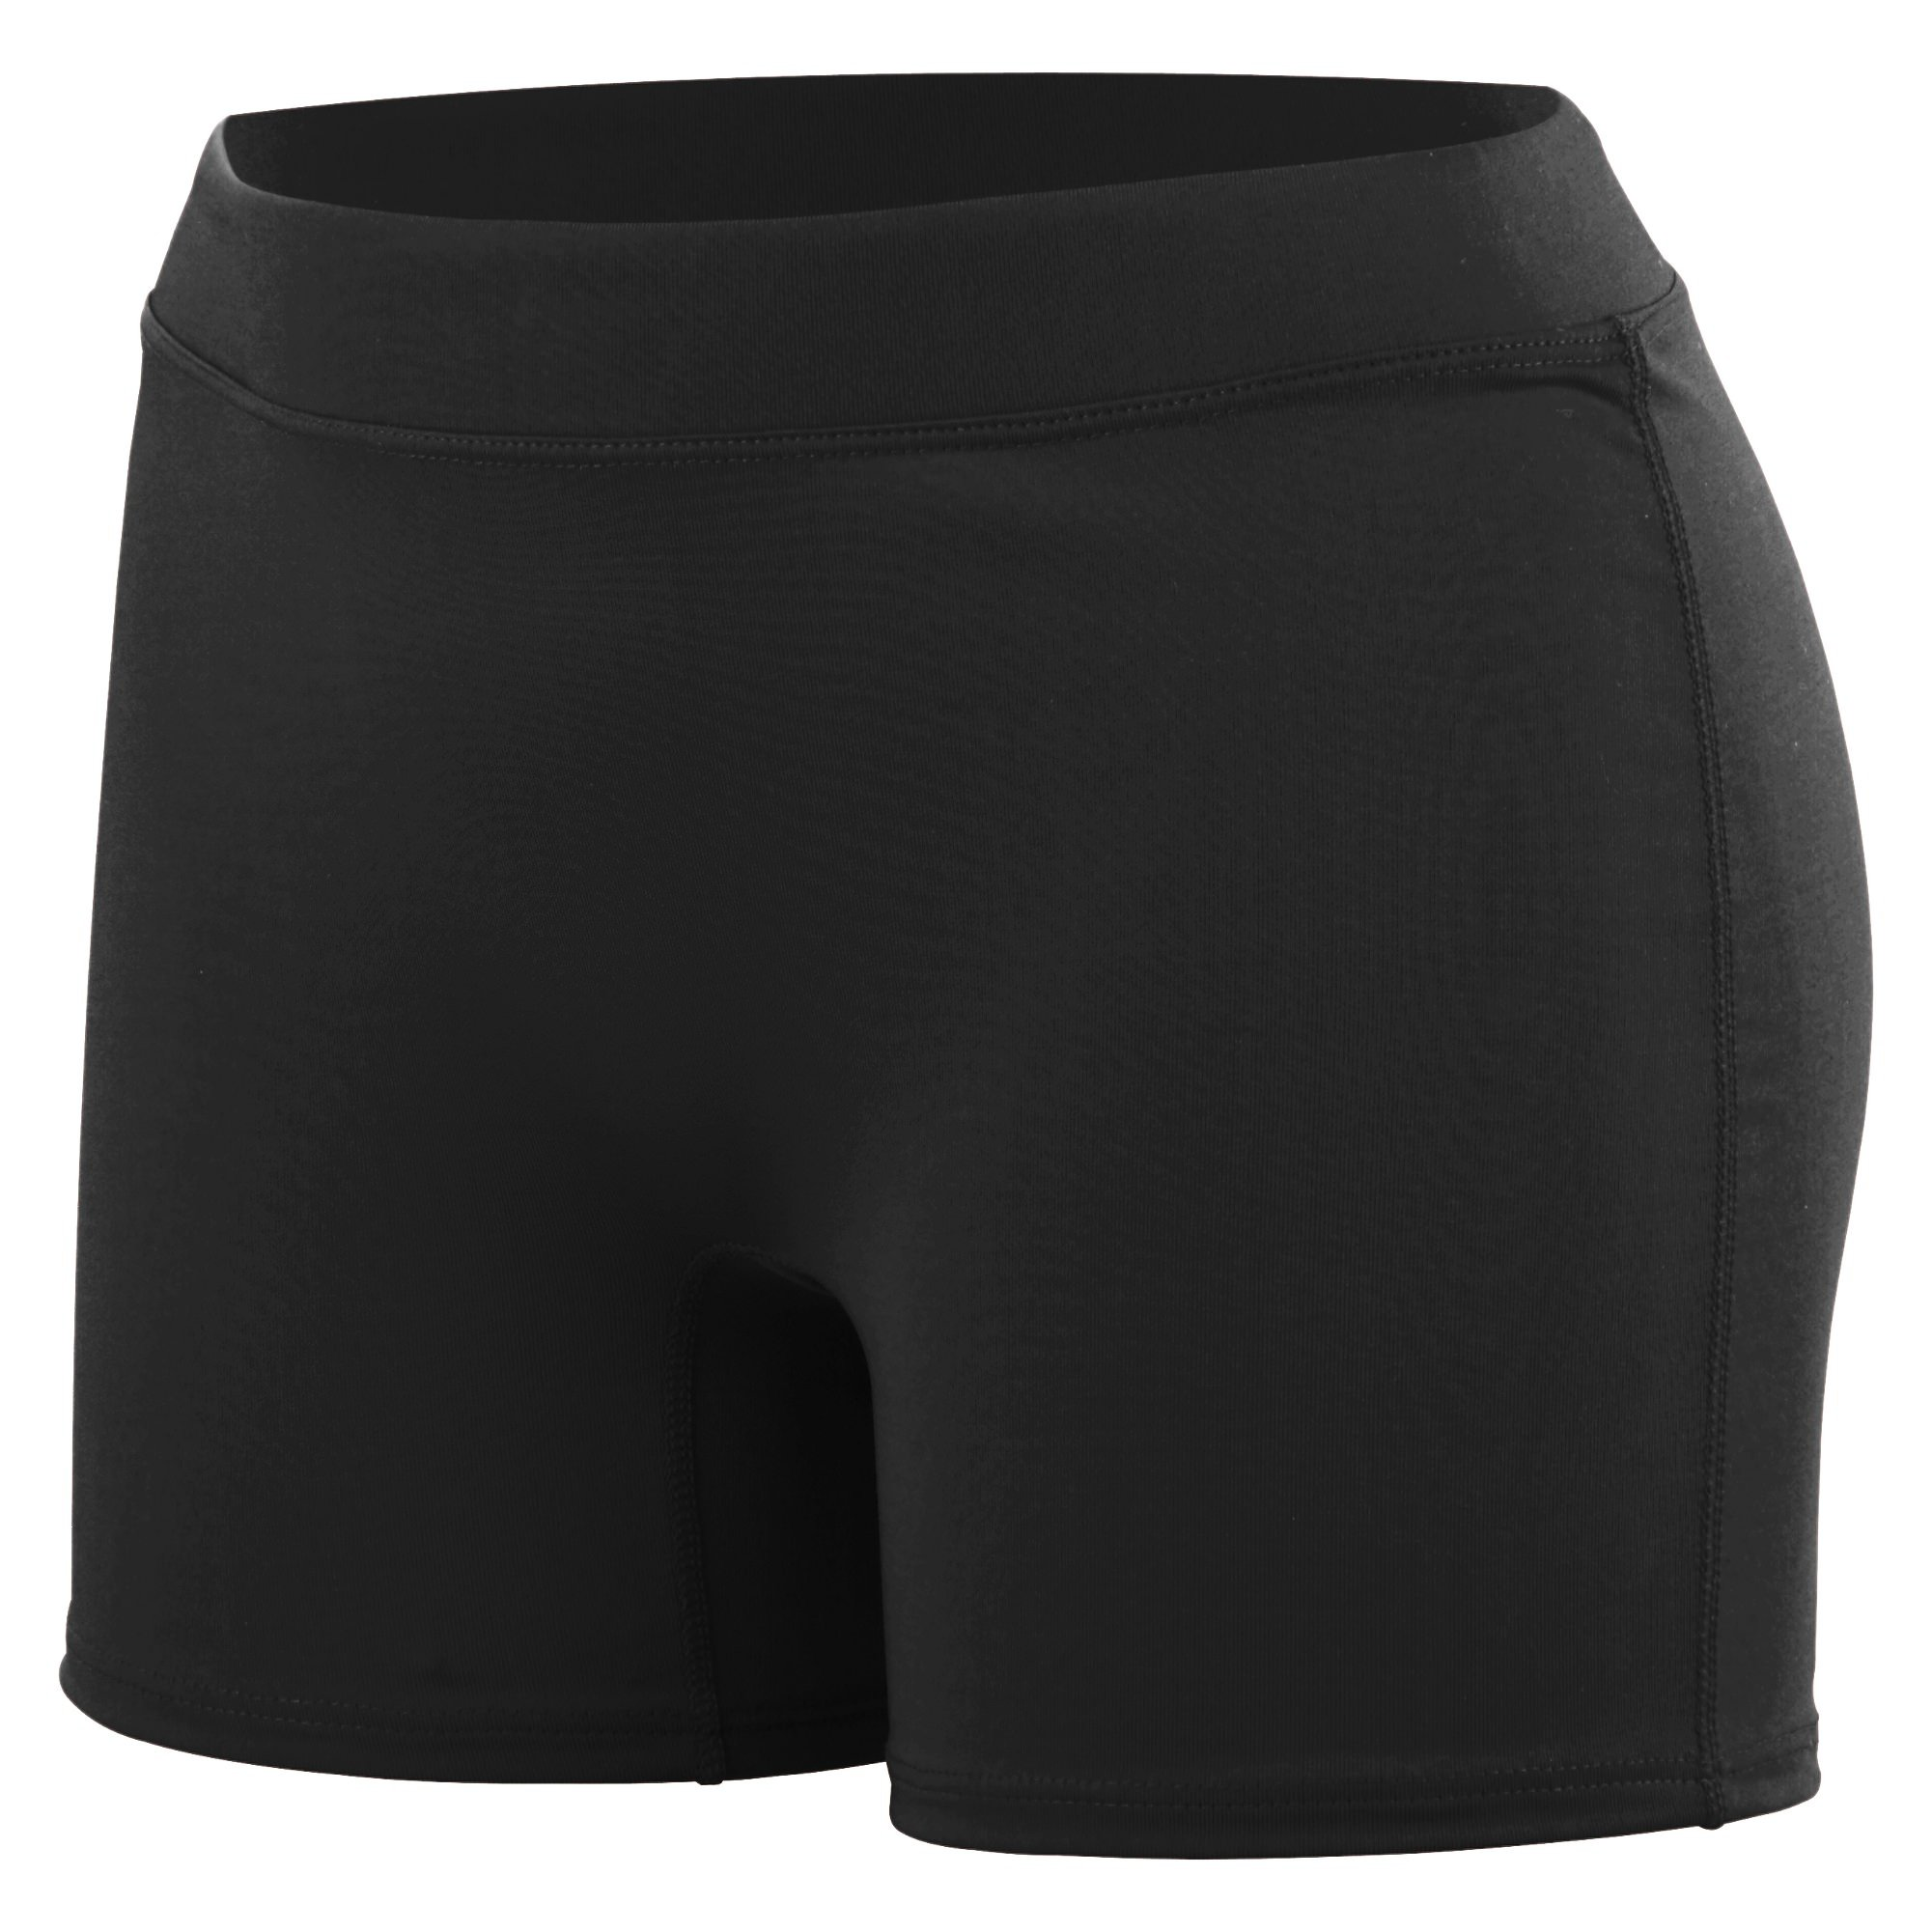 Augusta Sportswear Women's Enthuse Volleyball Shorts, Black, Medium